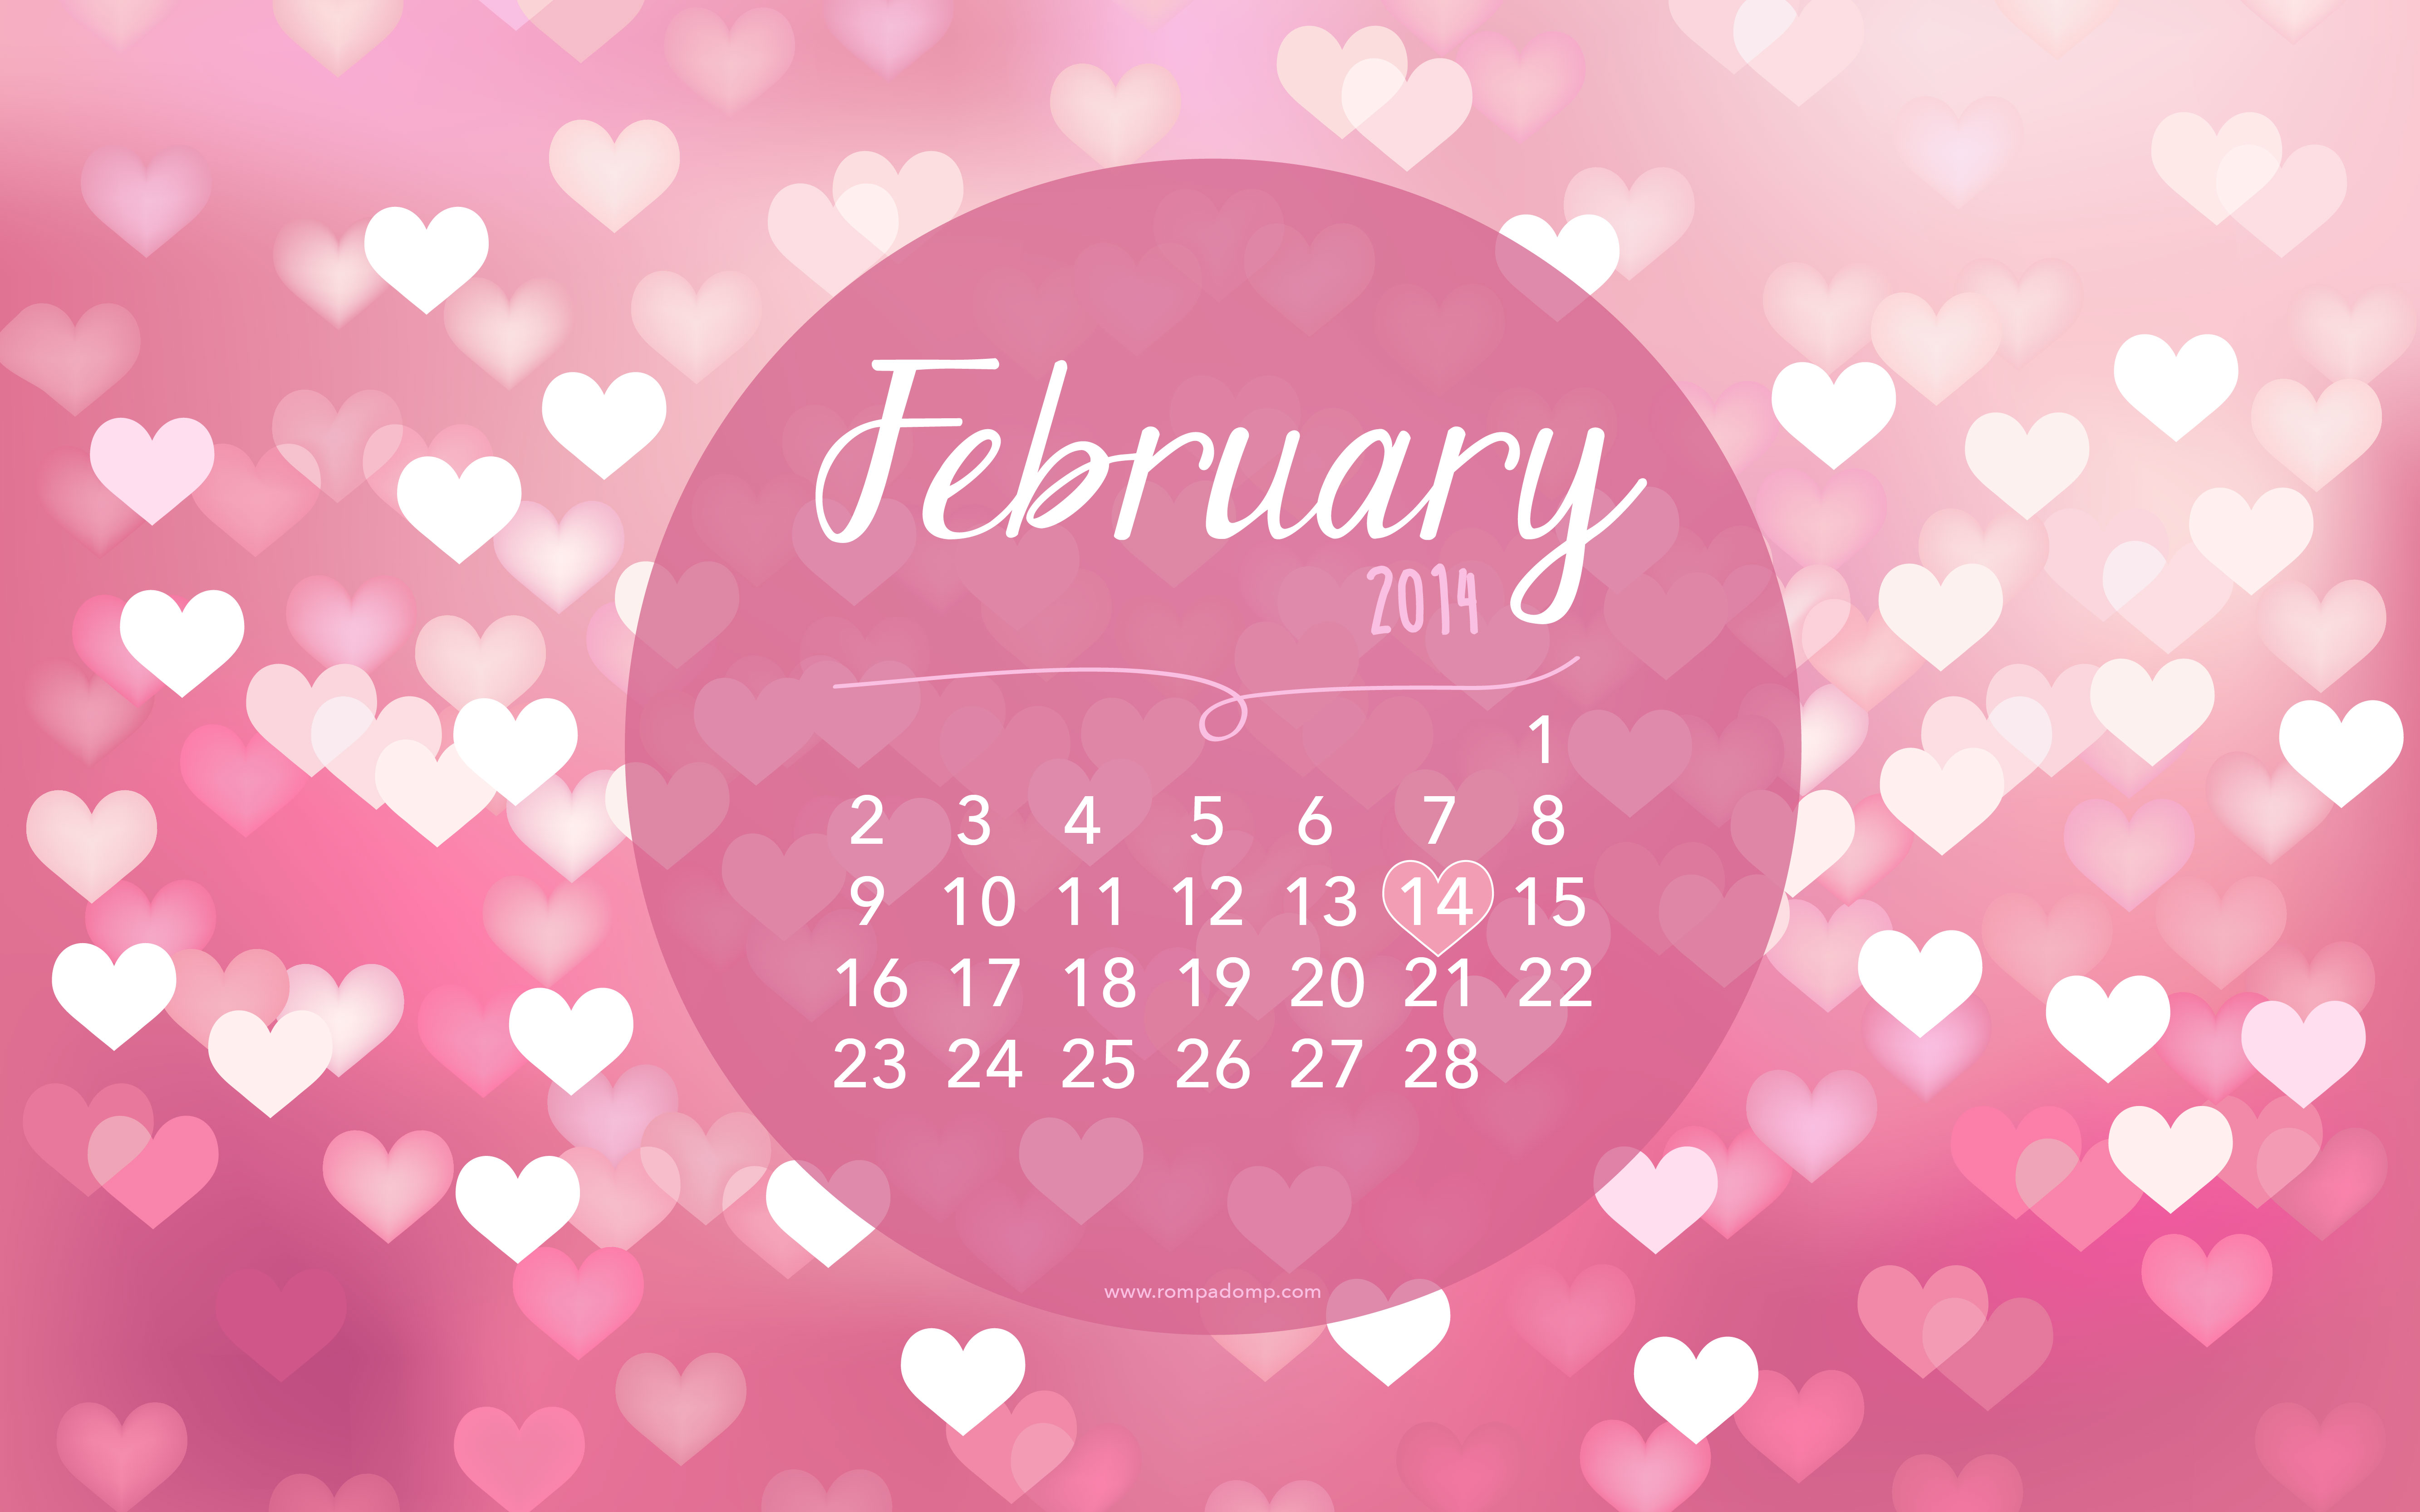 Displaying 19 Images For   February Desktop 5333x3333